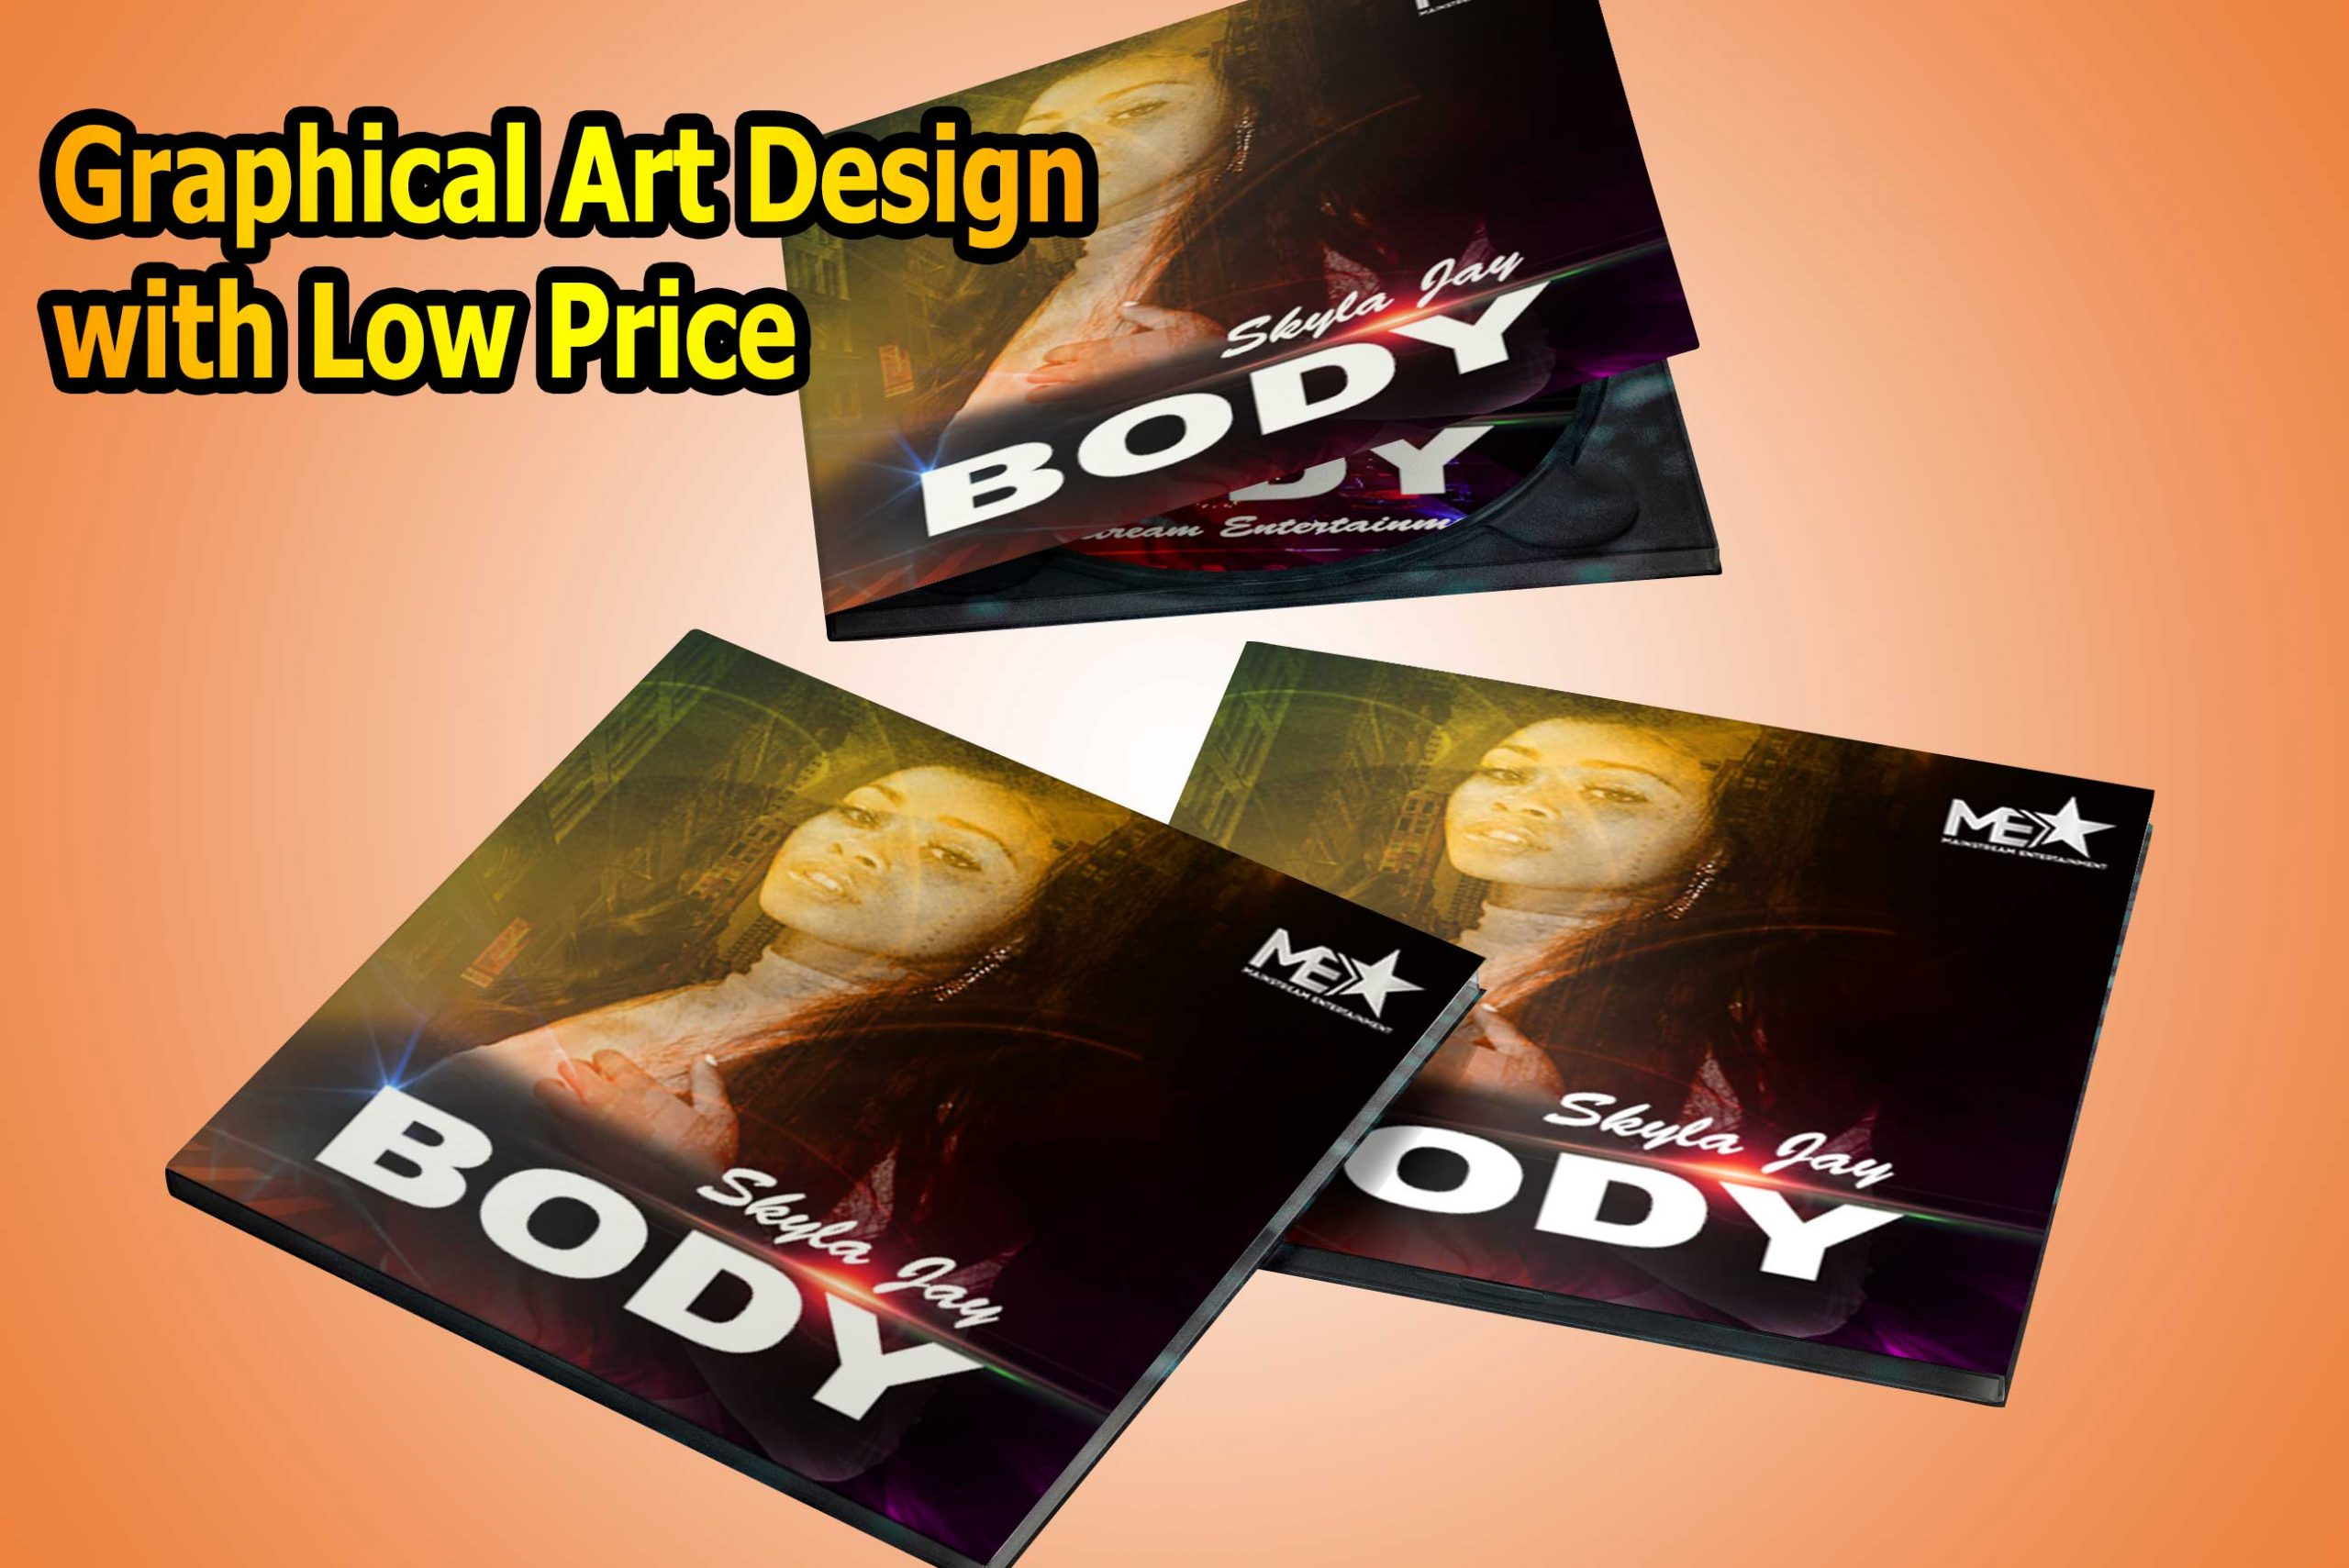 Album Cover & Graphical Art Design with Low Price